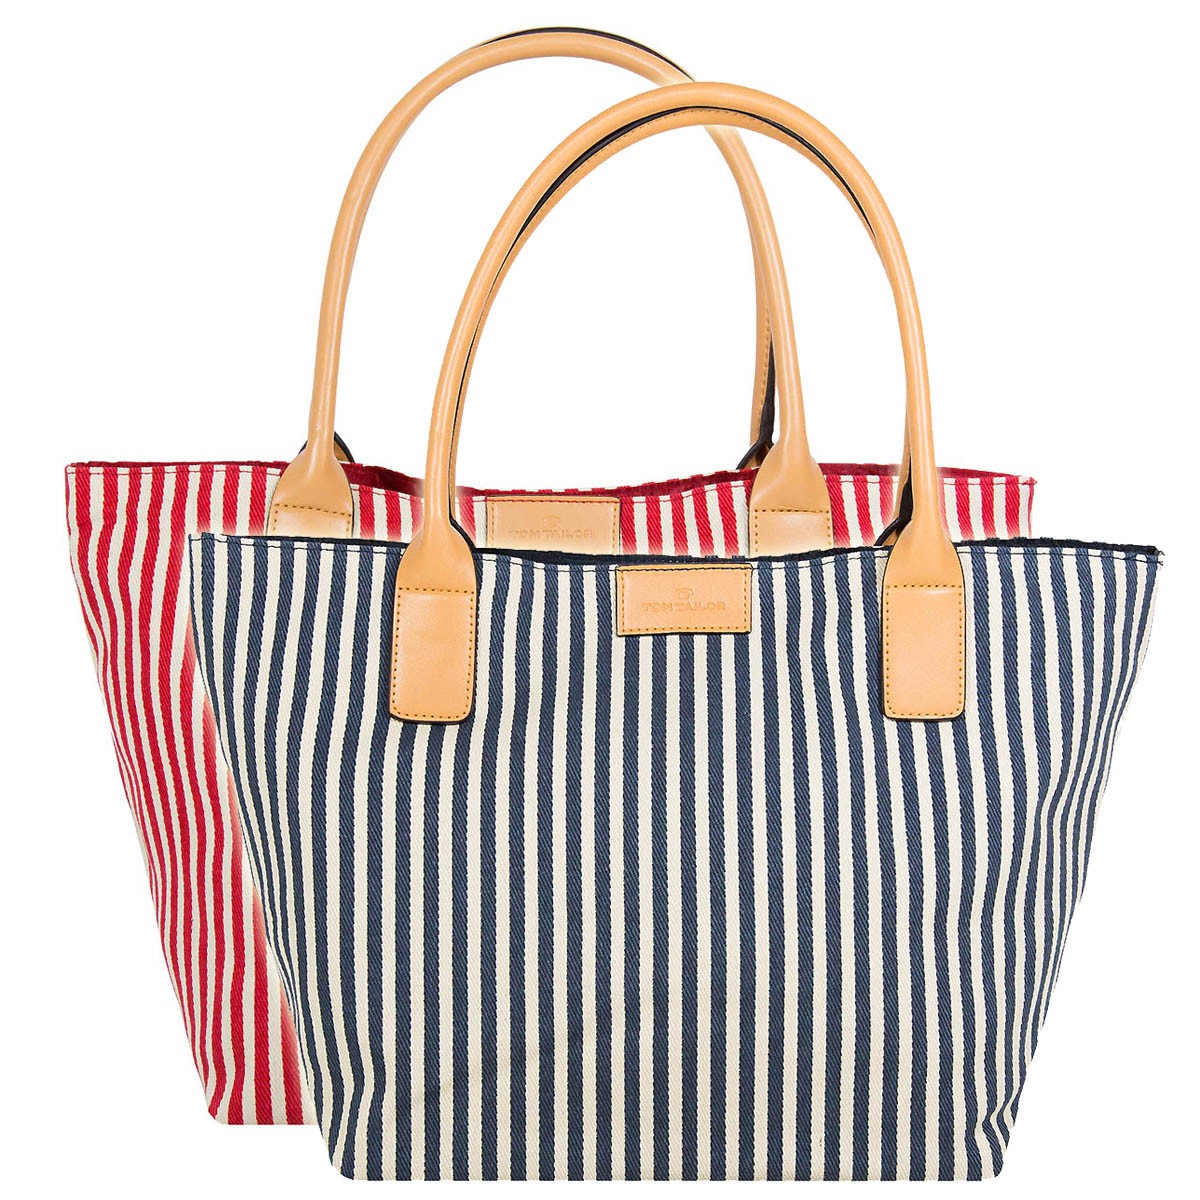 Tom Tailor Shopper MIRI MARINE 17103